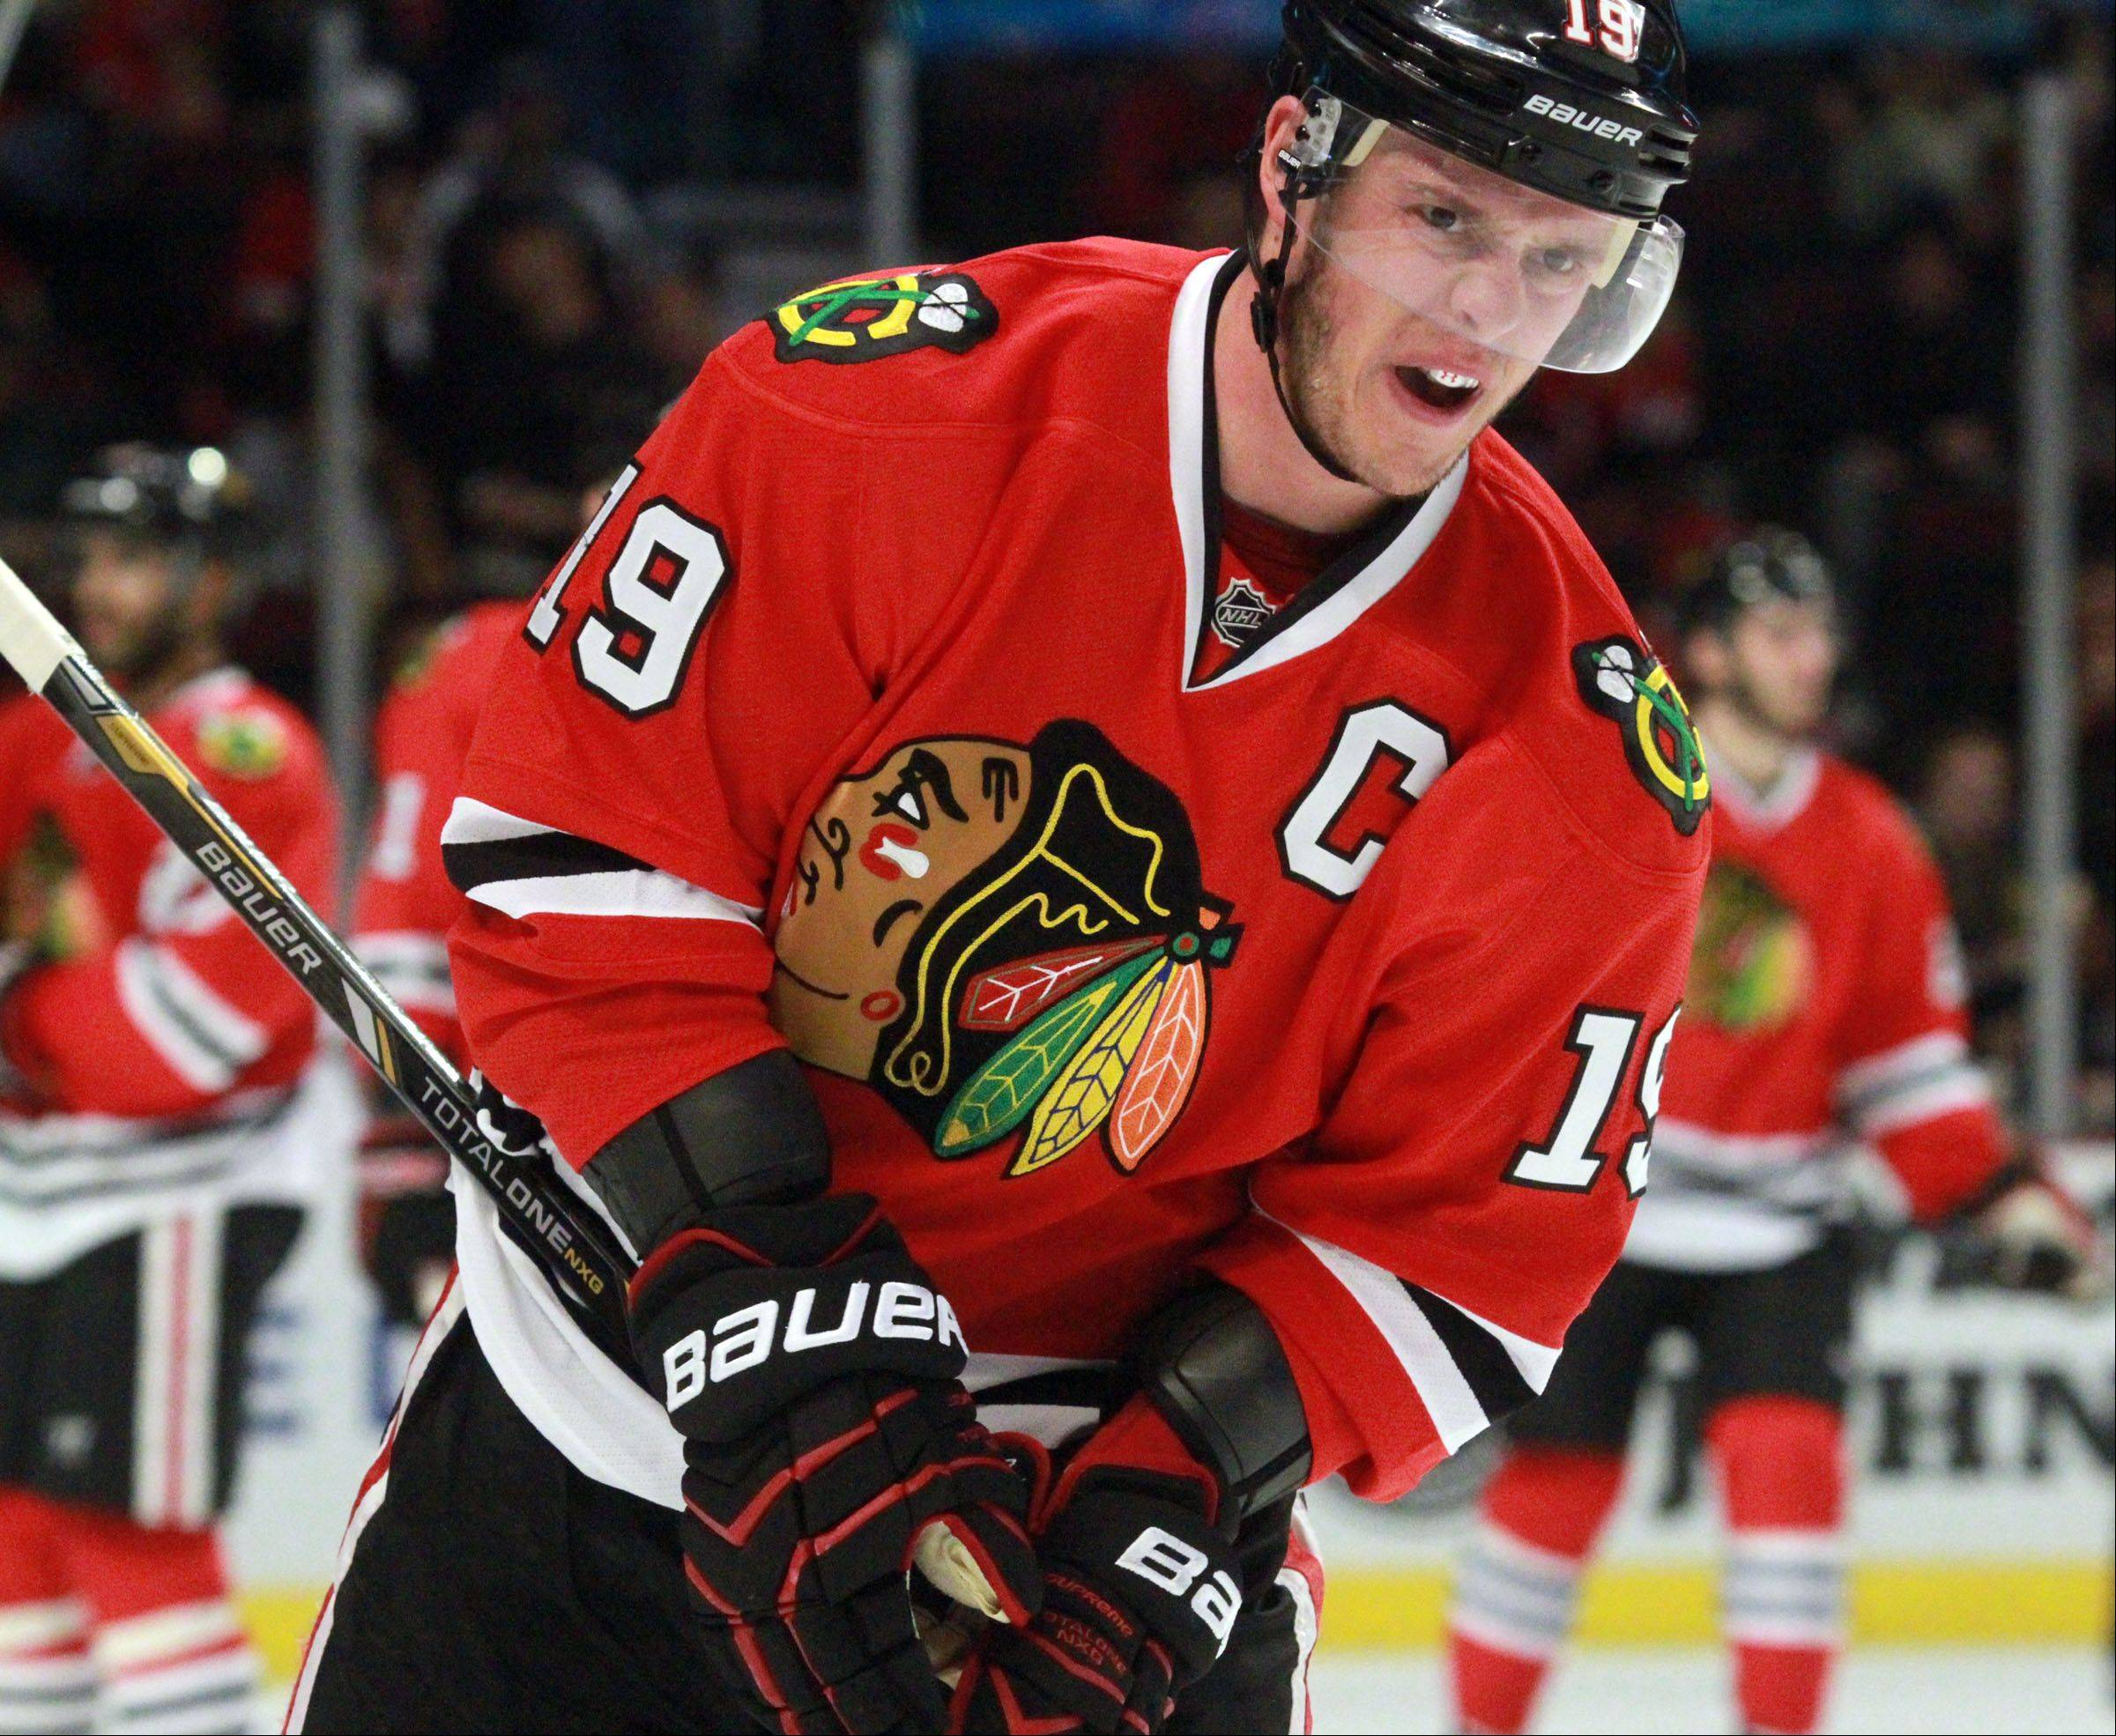 Blackhawks center Jonathan Toews is one of three finalists for the Selke Trophy, which is awarded to the top defensive forward in the NHL.